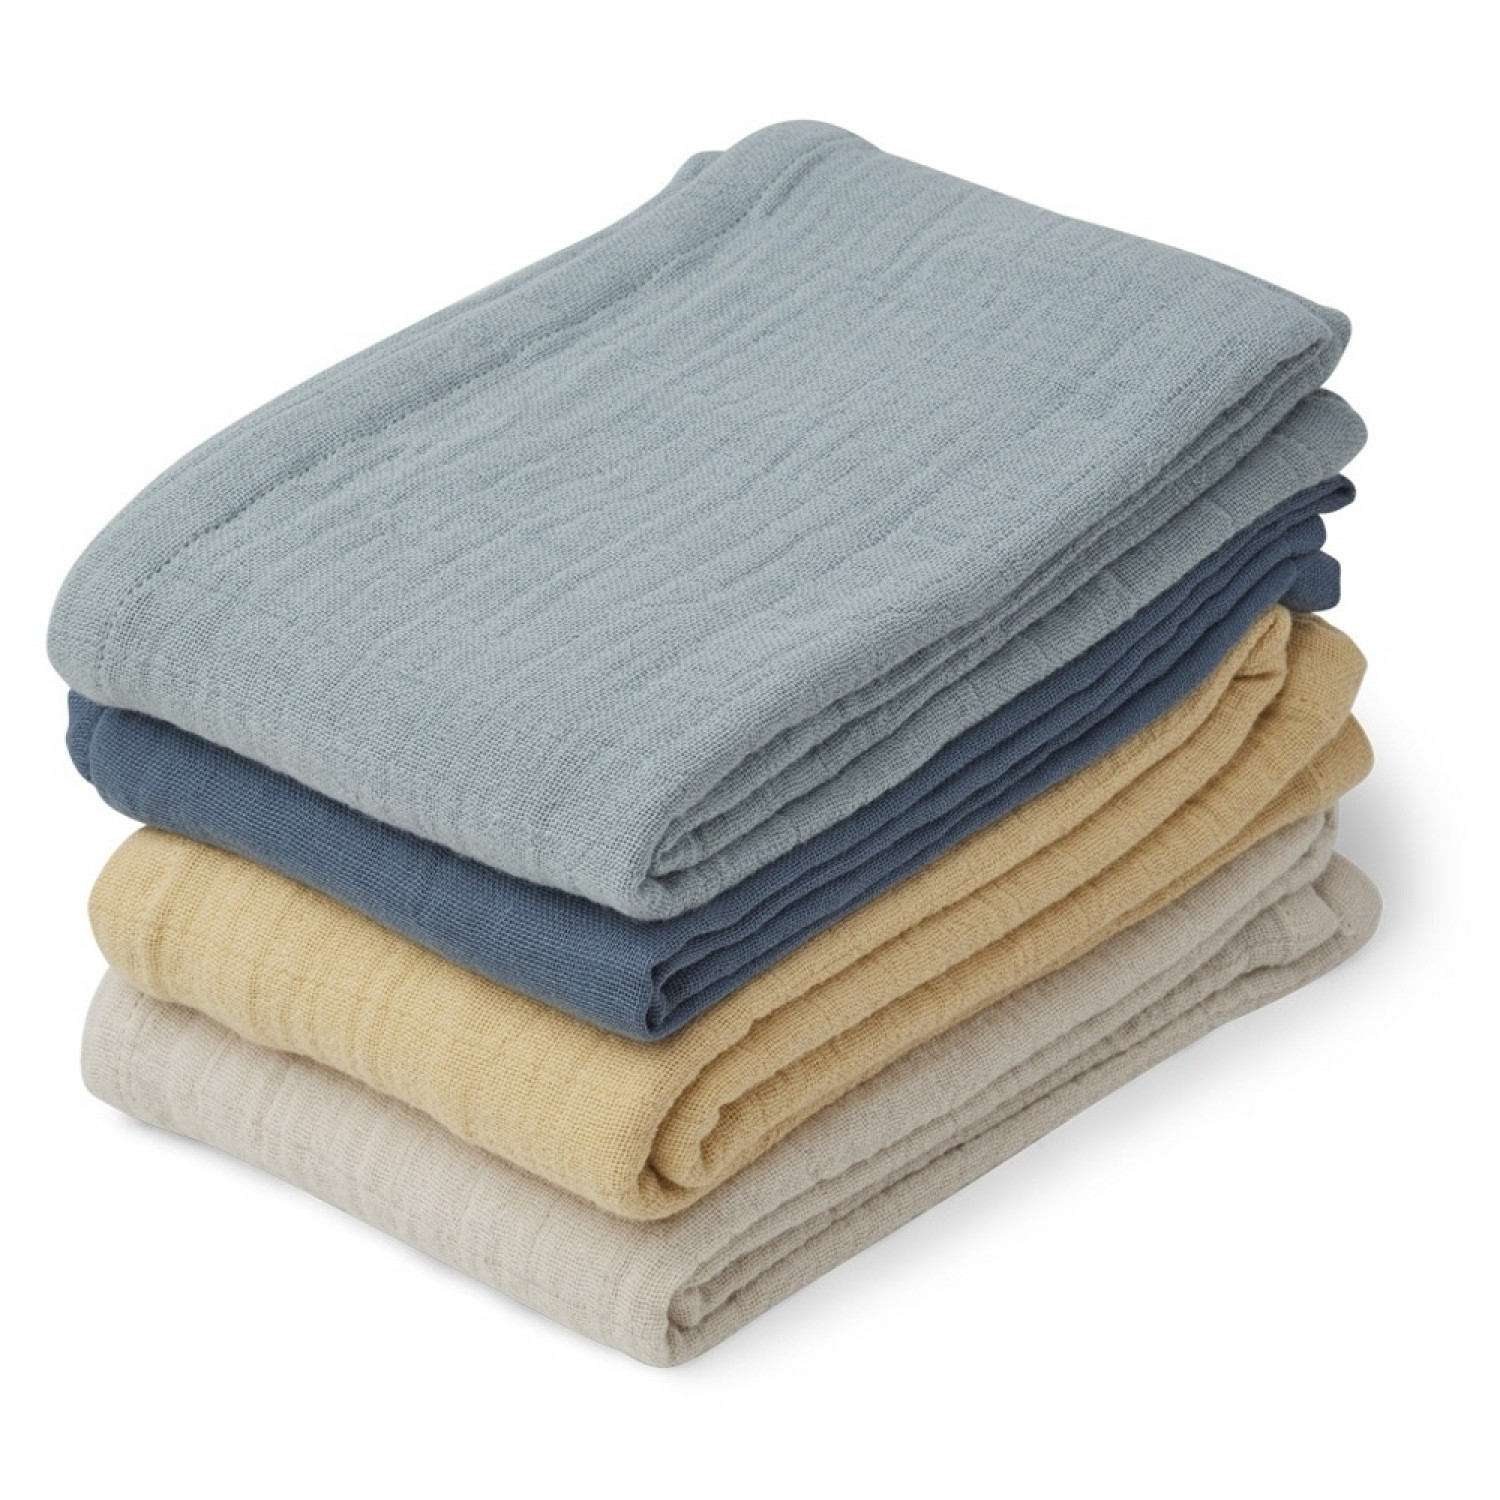 MUSLIN CLOTH LEON - 4 PACK | BLUE MIX